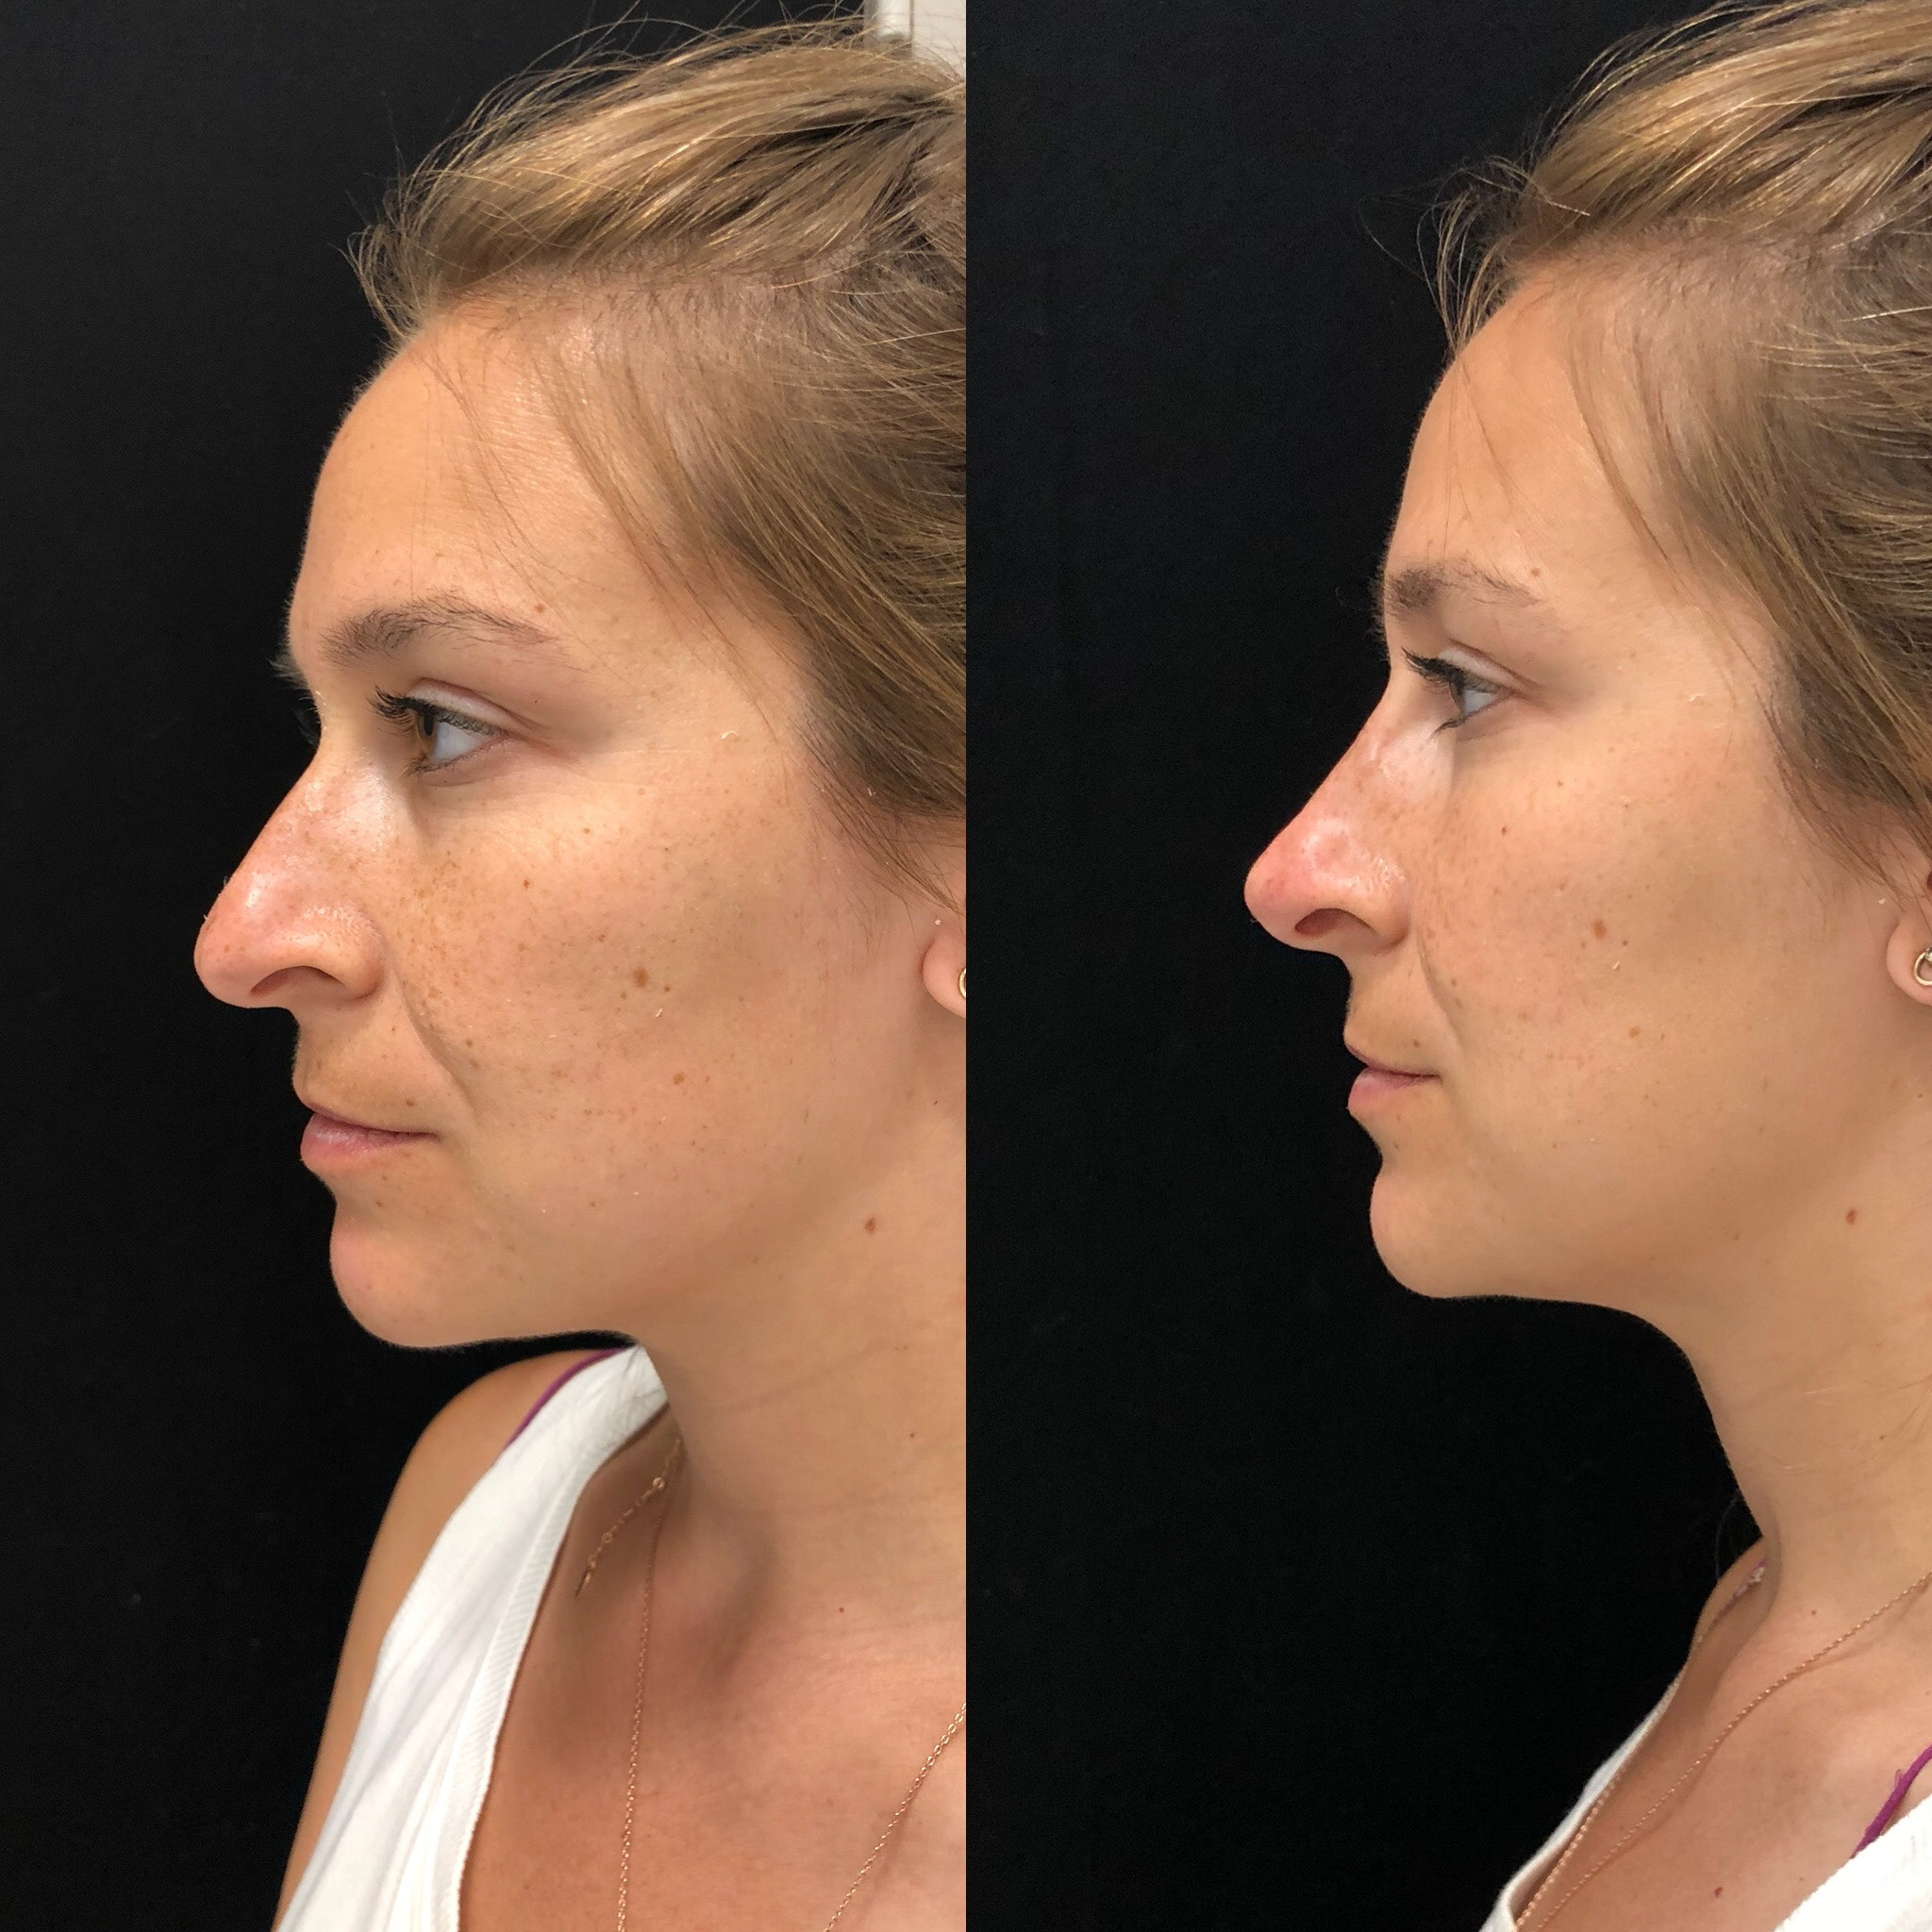 I Had A Nonsurgical Rhinoplasty The Results Blew Me Away